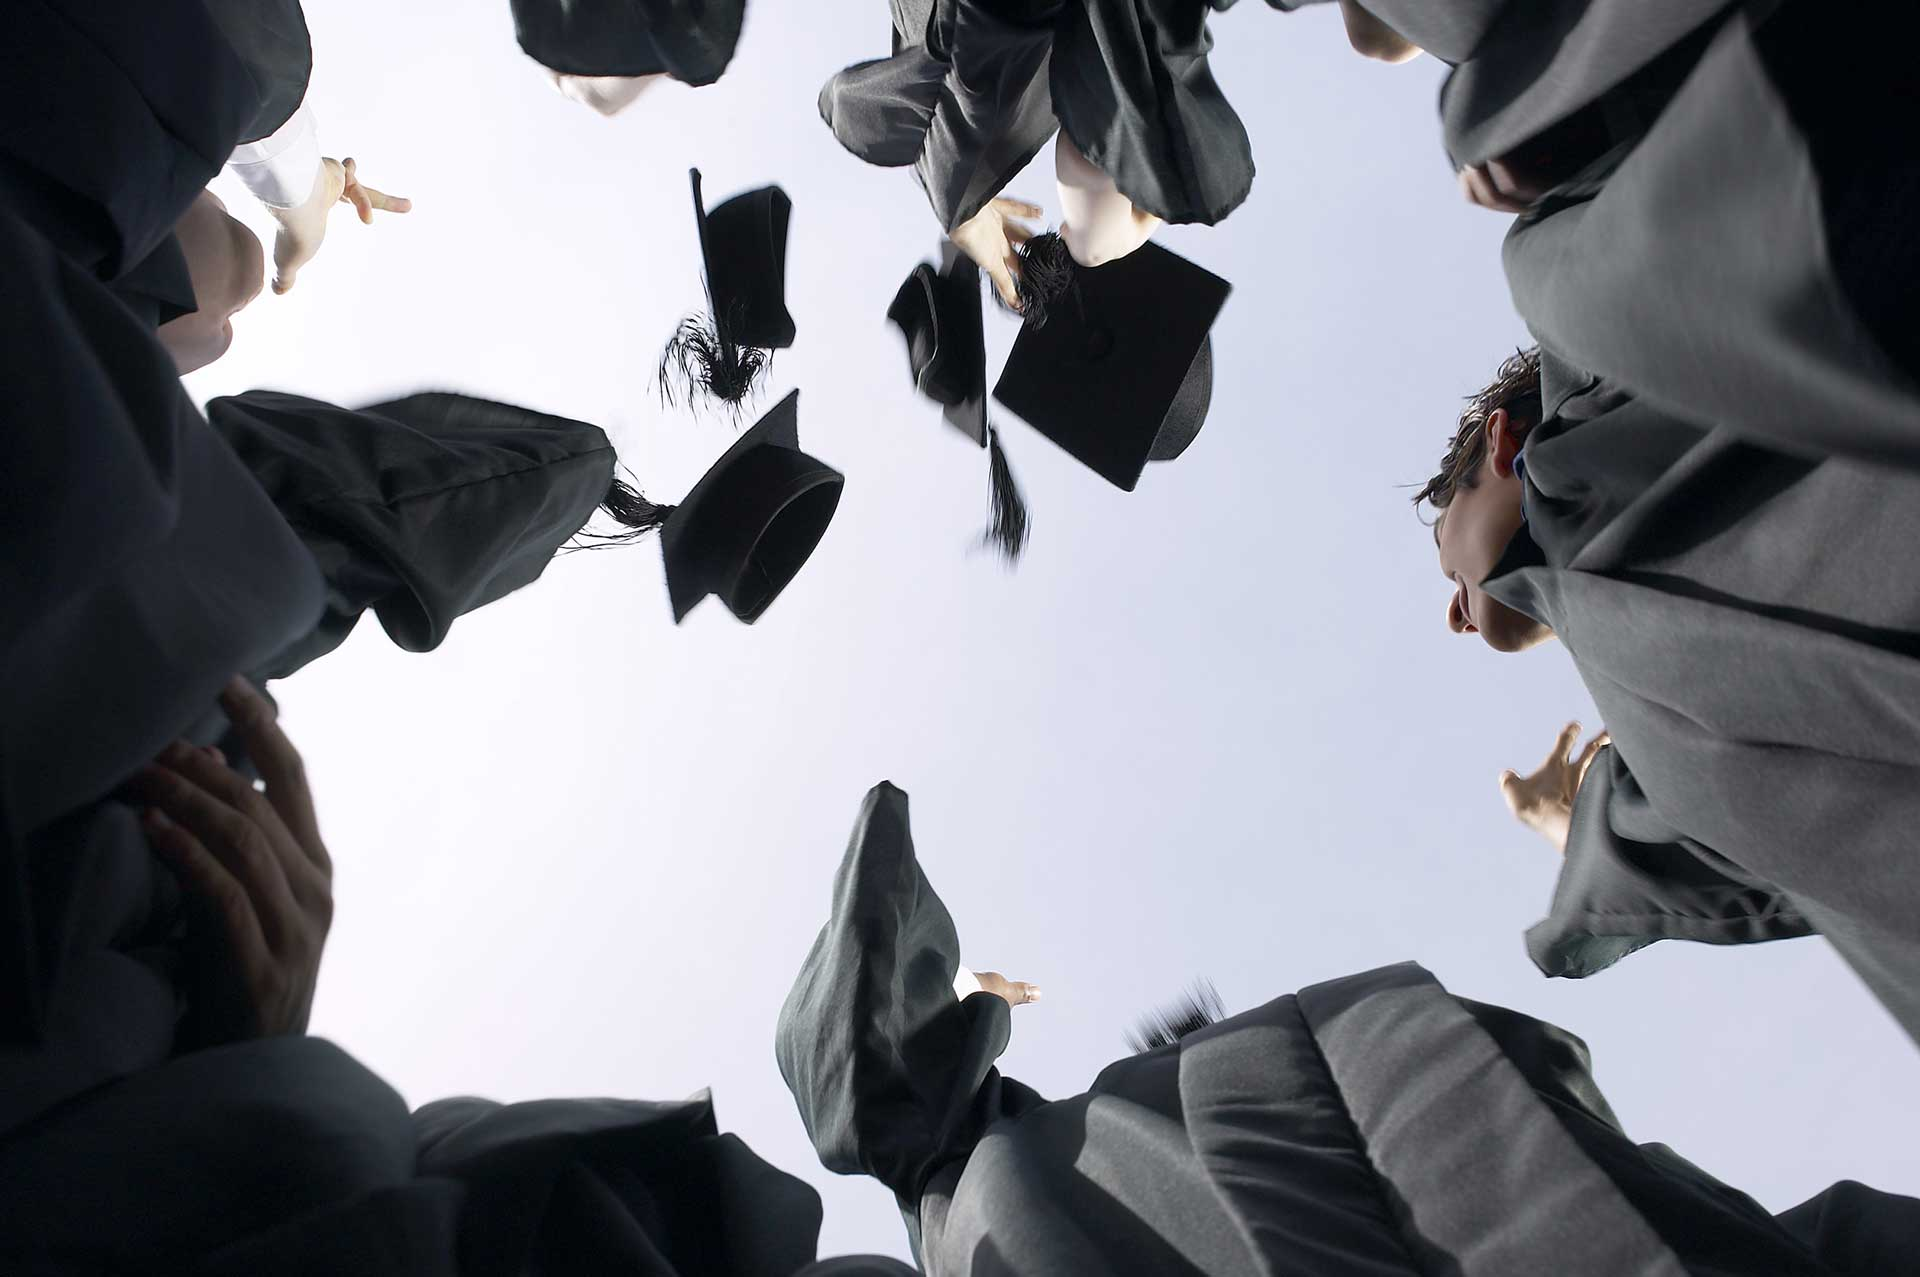 students in black graduation gowns throwing their caps into the sky